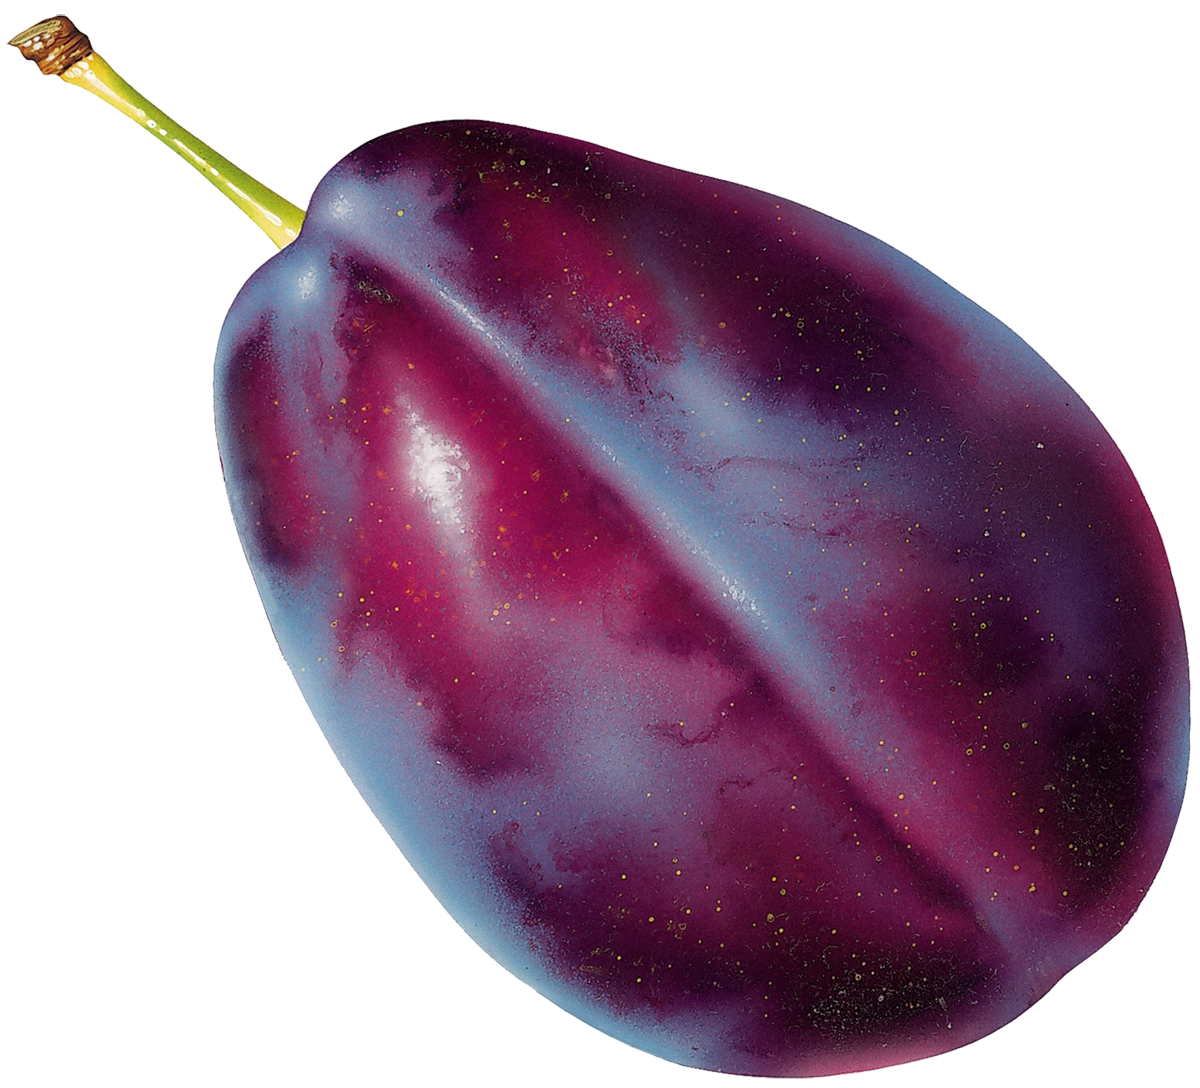 Plum clipart prunes. Prune picture fruit and